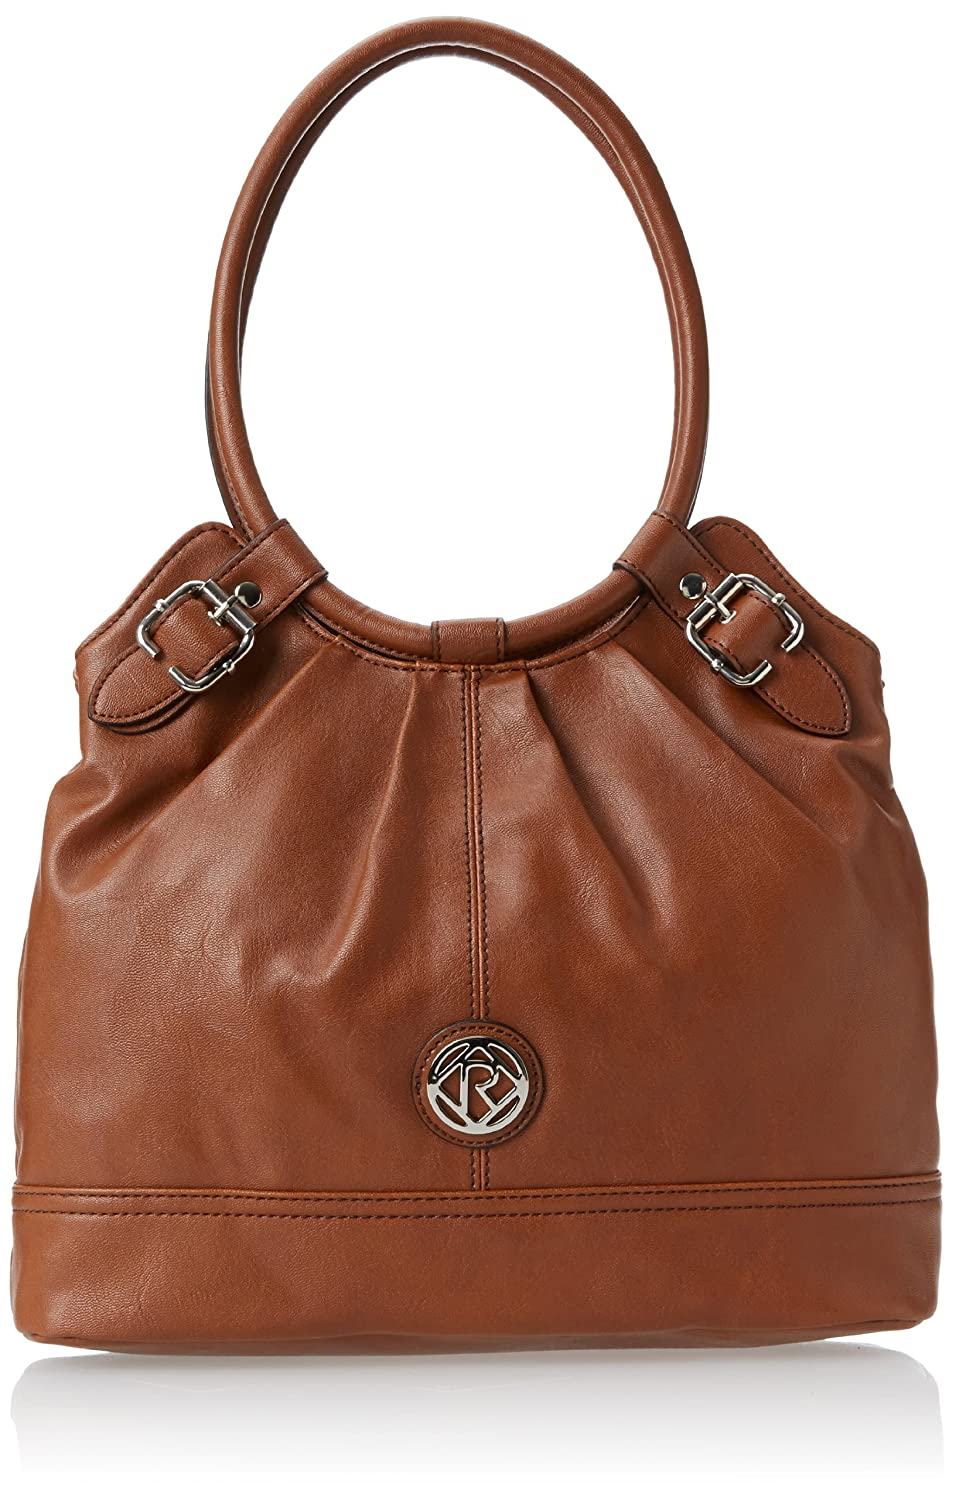 f8c0cba4b1f1 Relic Bleeker Ring Shopper Handbag Brown  Amazon.co.uk  Shoes   Bags